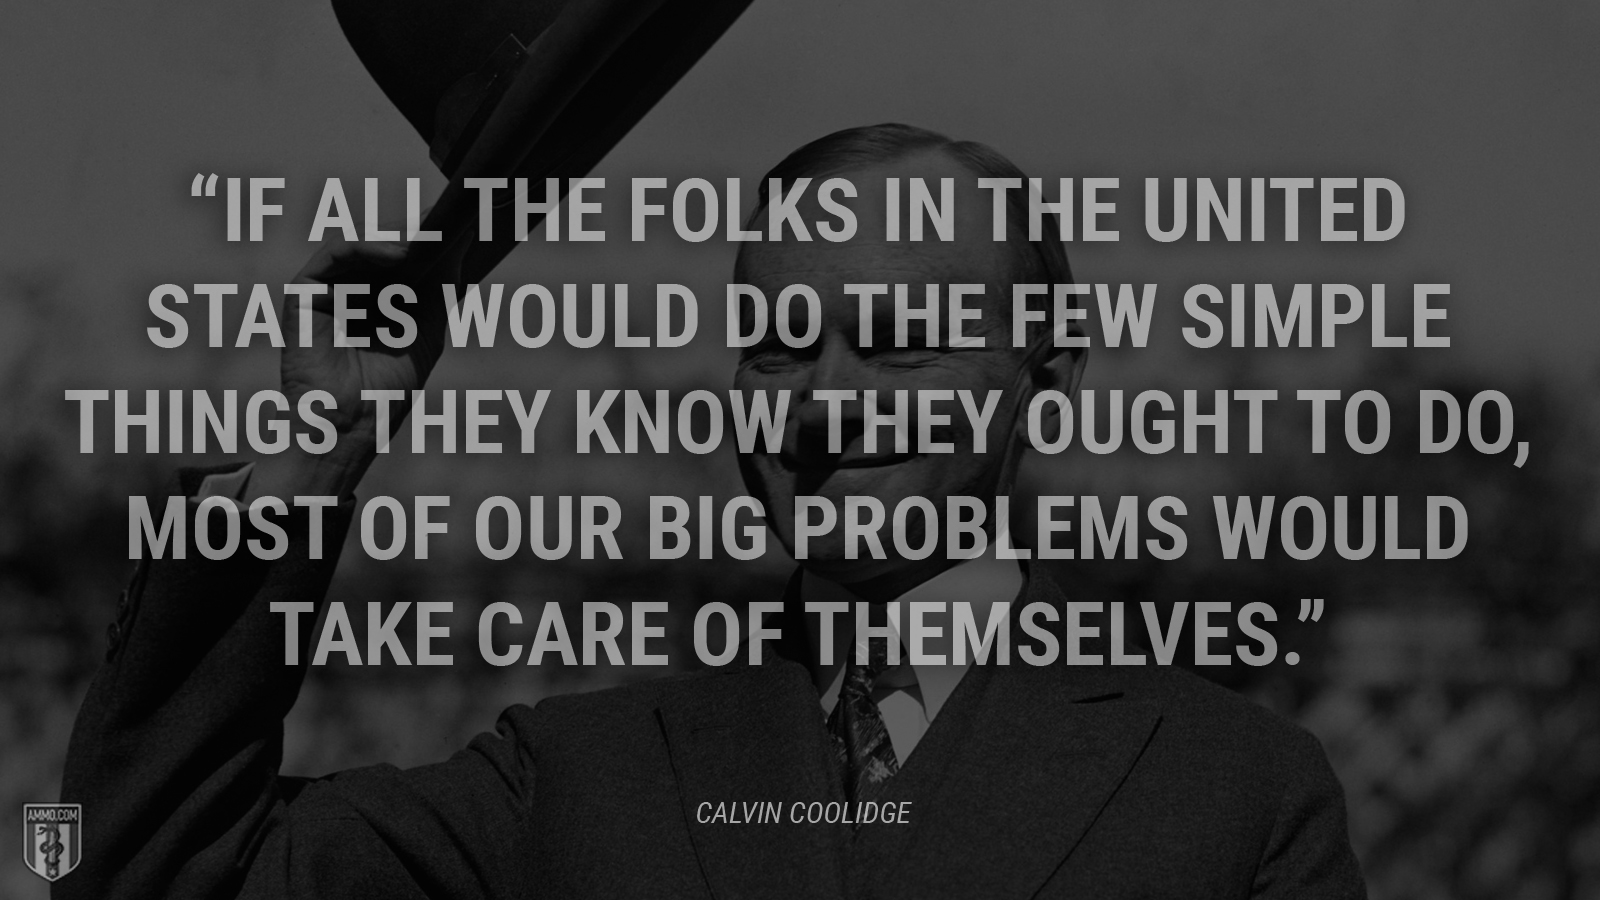 """If all the folks in the United States would do the few simple things they know they ought to do, most of our big problems would take care of themselves."" - Calvin Coolidge"